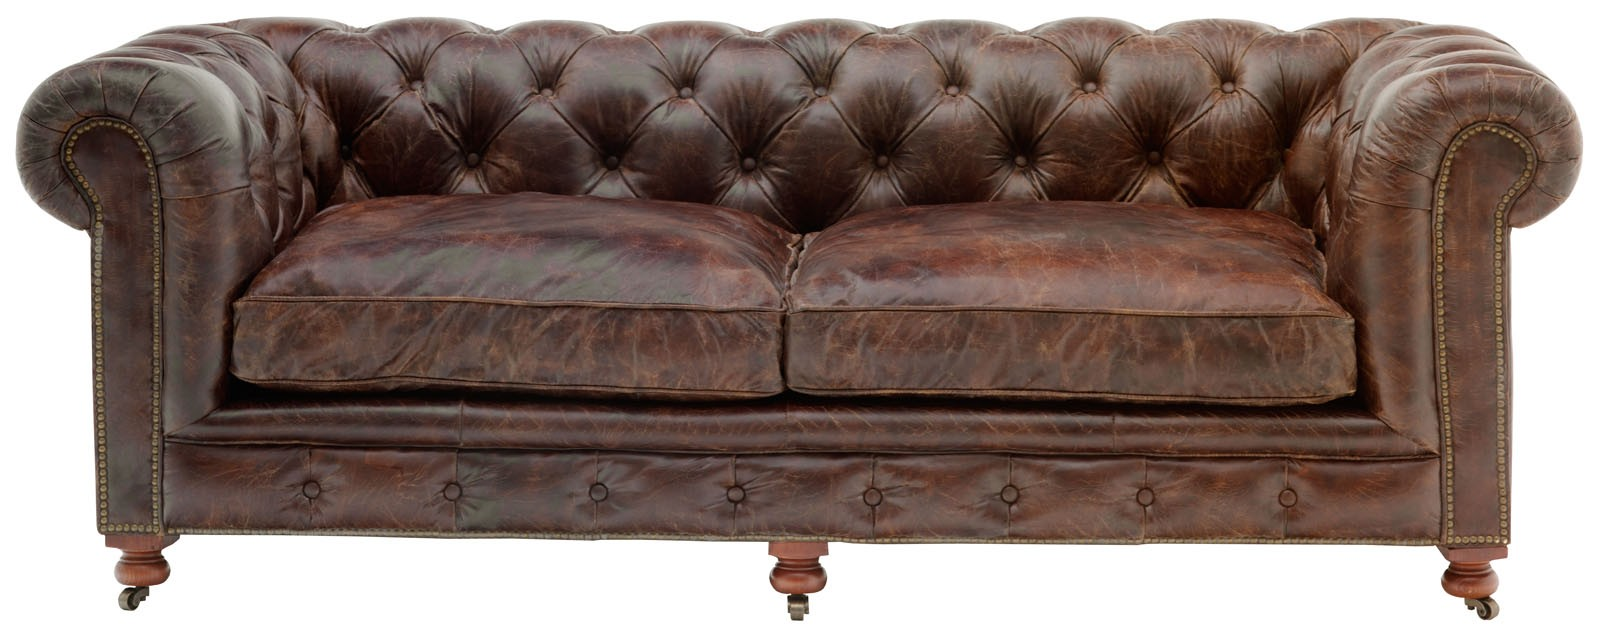 great leather sofa chair 71 in sofas and couches ideas with leather sofa PVARGOA